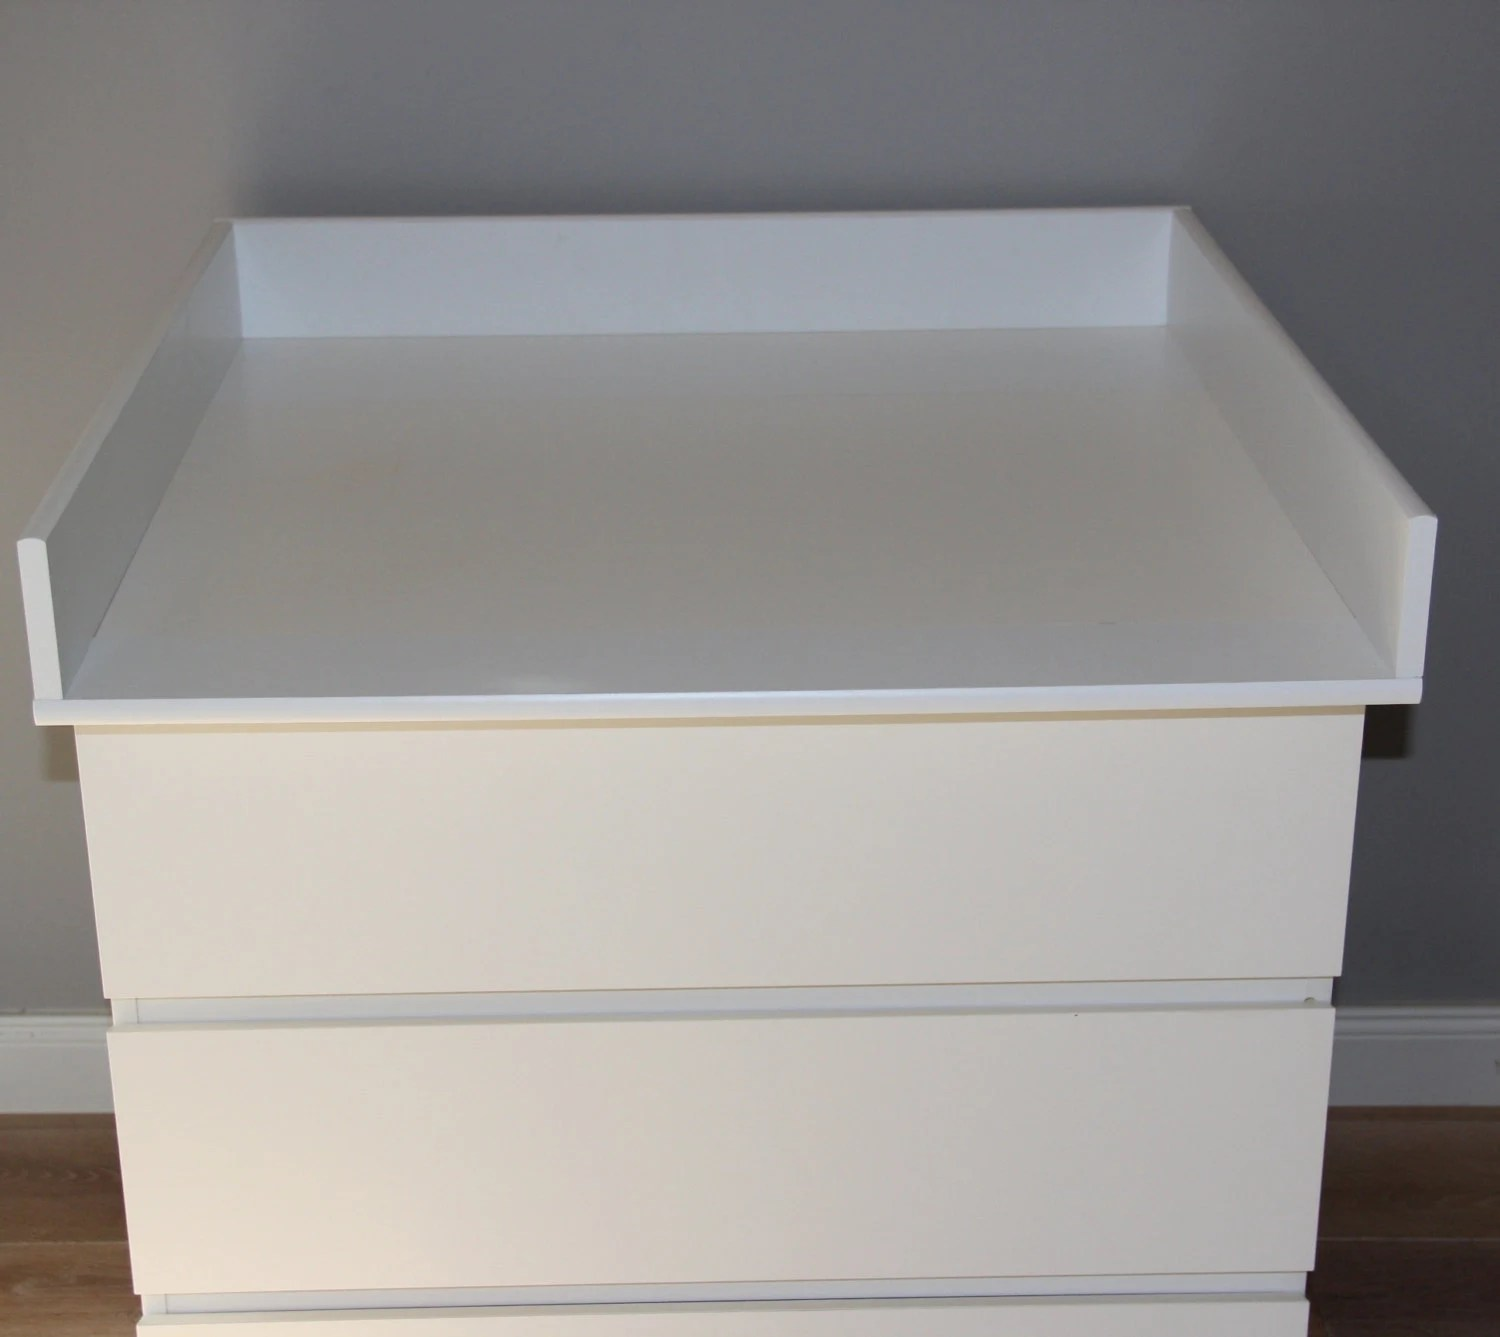 Ikea Aspelund Bett Ikea Dresser Changing Table Nazarm